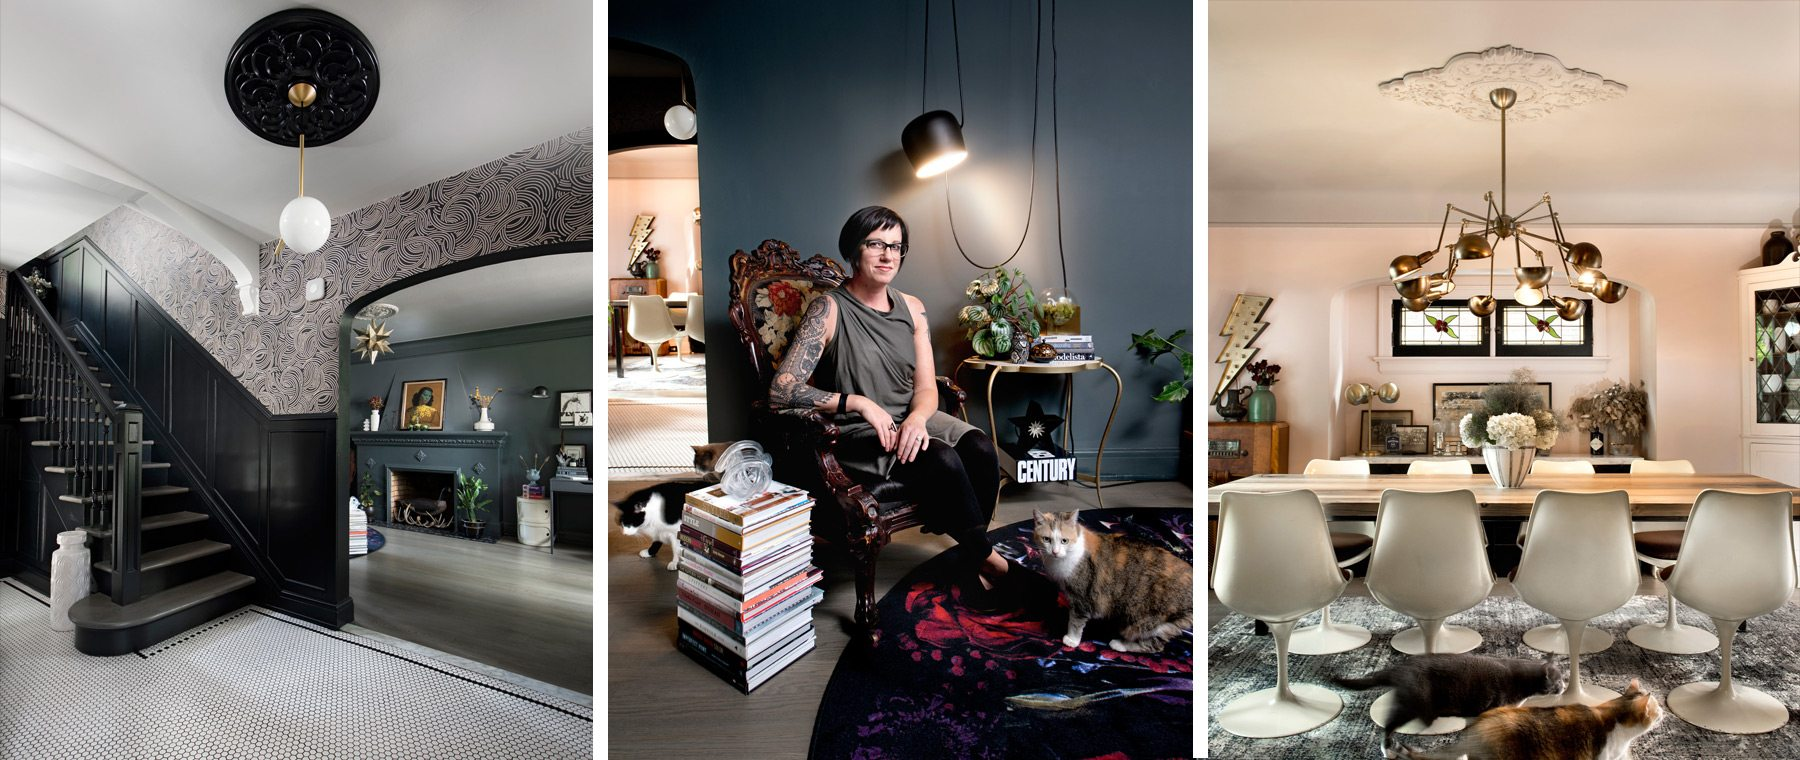 Boldly does it — Rich colours & flea-market finds add cosmopolitain flair to design blogger's home